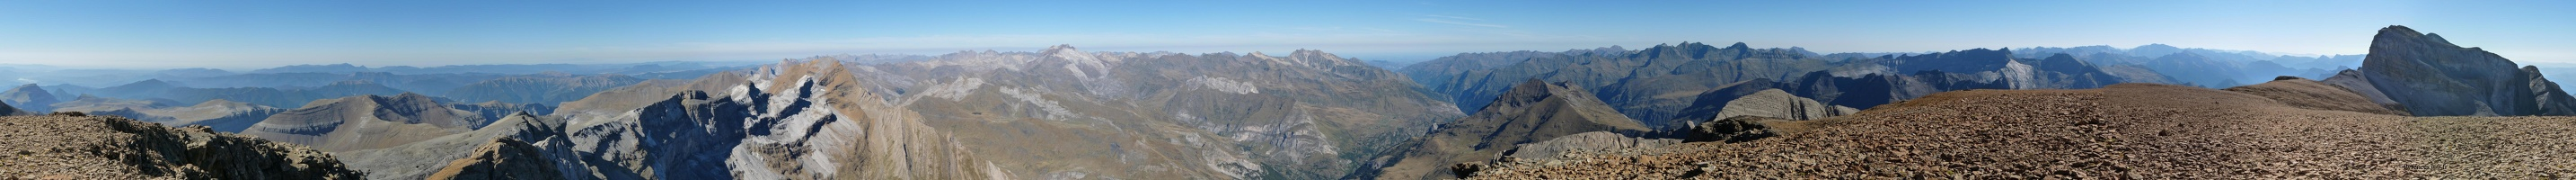 Panorama from the Pico de Marboré